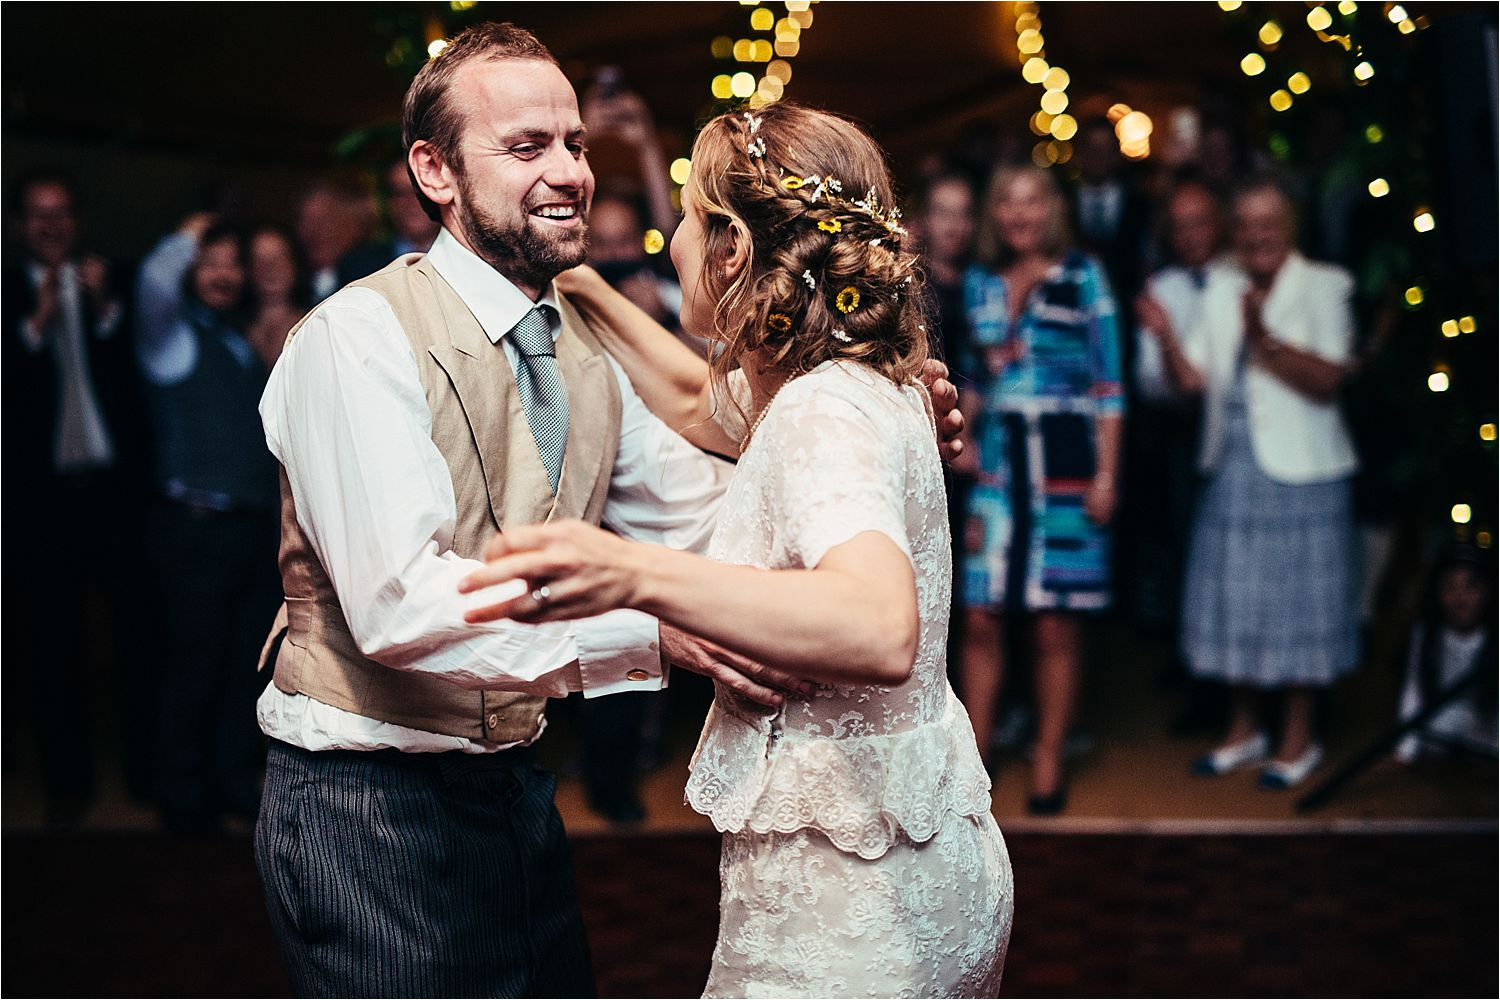 Bride and groom first dance at Manchester tipi wedding